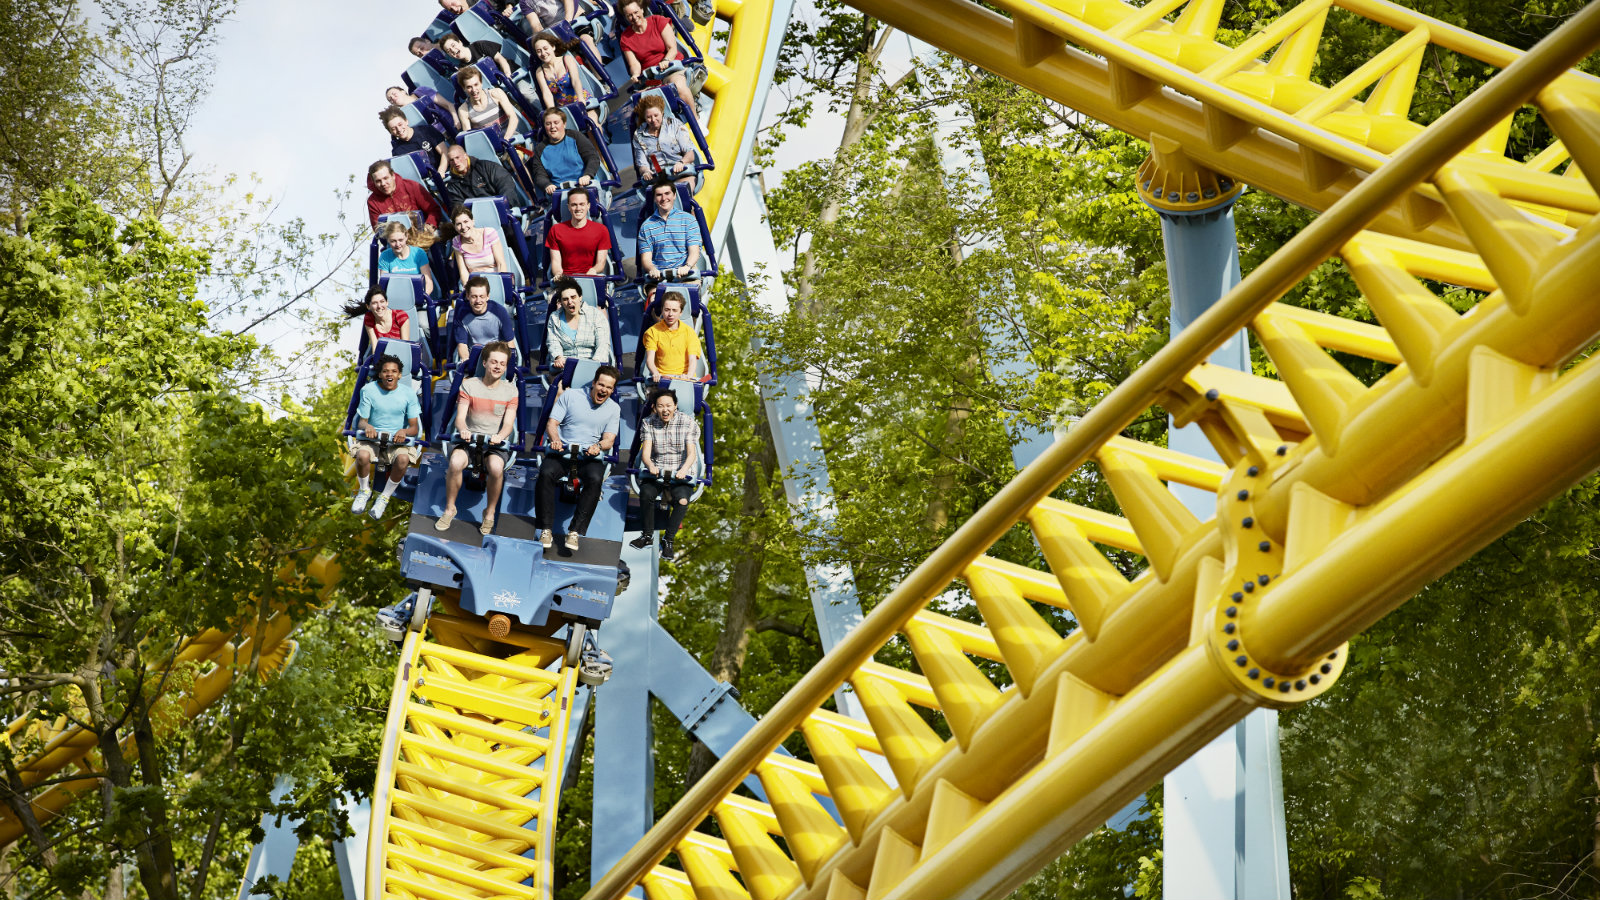 Darien Lake Good Any Day single ticket. Paper tickets - if you need an odd # of tickets (1, 3, 5, 7, etc.). single ticket admission. This is the only way for you to obtain single tickets. Combine with BOGO tickets above to save.